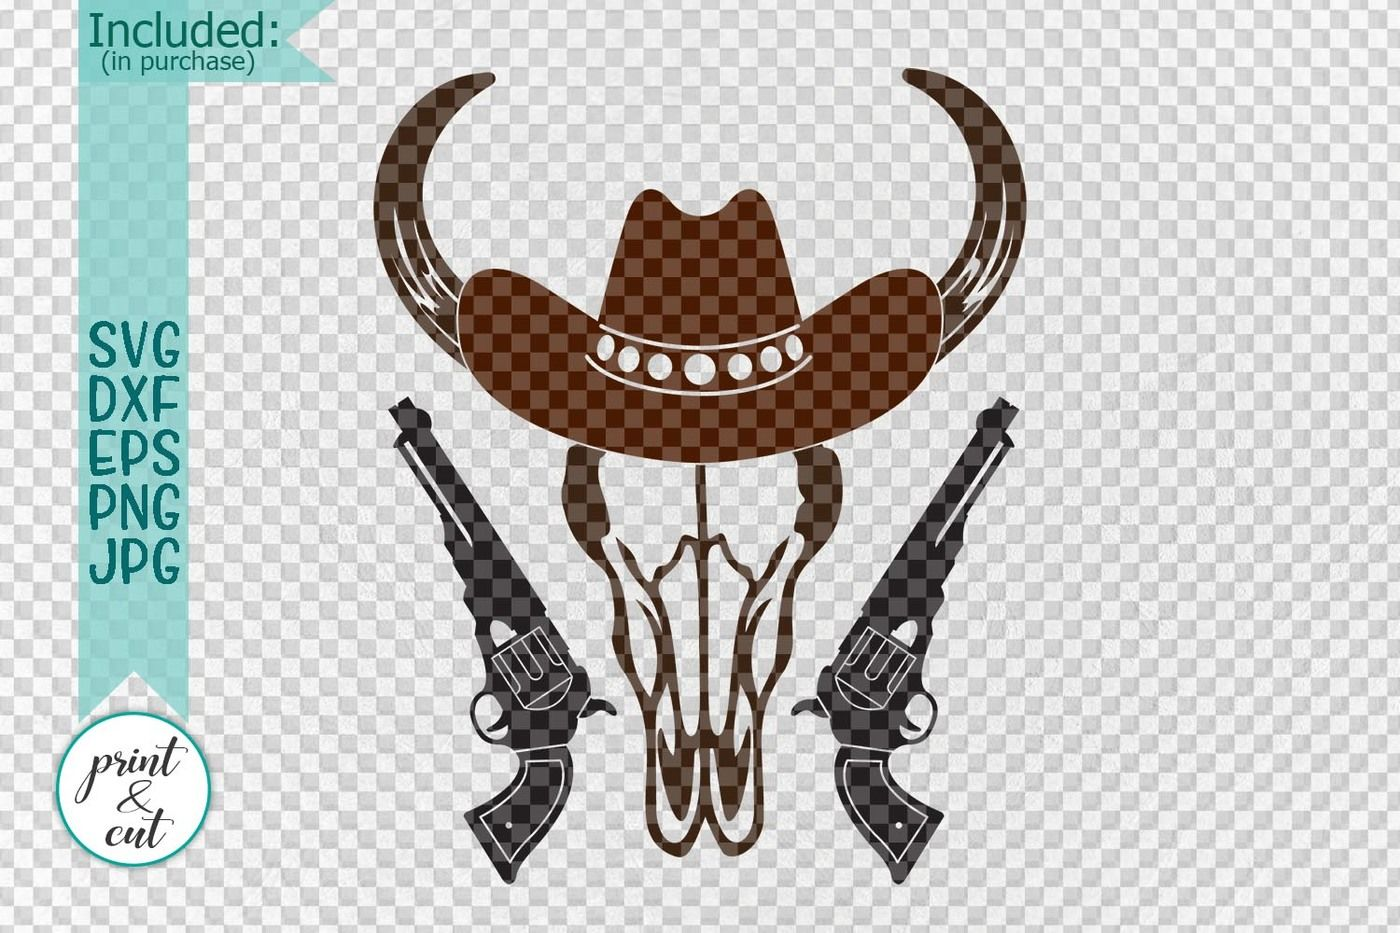 Bull Cowboy Hat With Guns Hunting Porch Sign Cut File Svg Dxf By